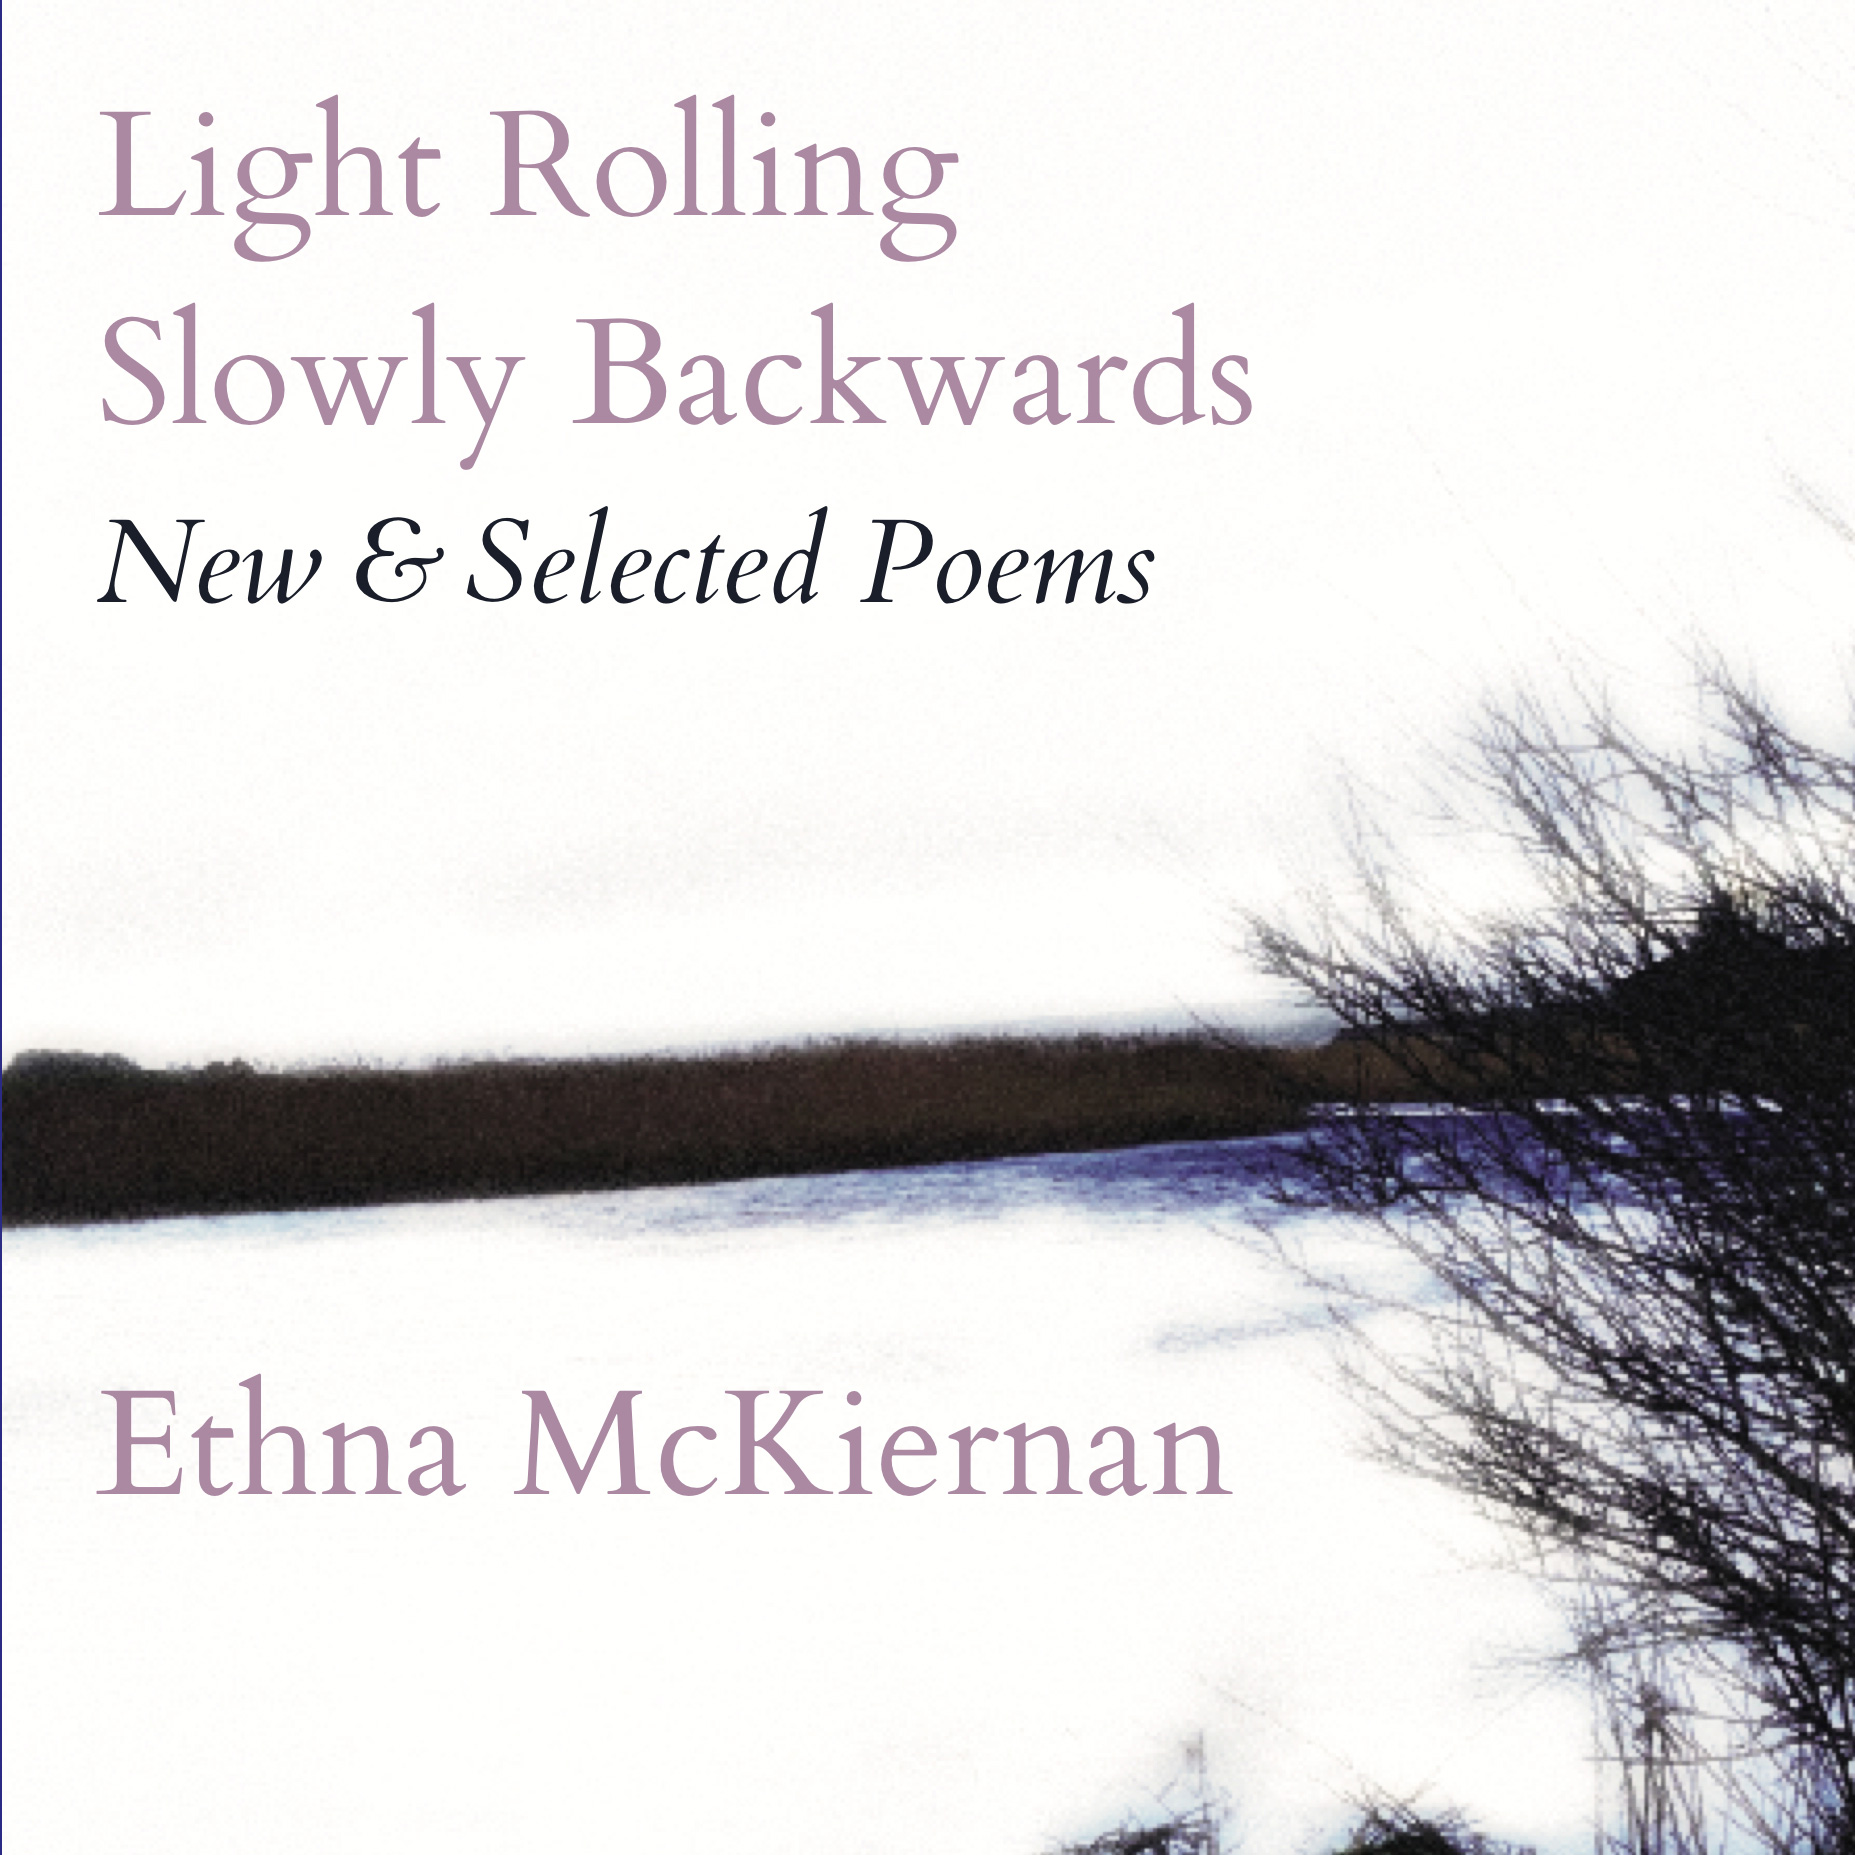 Ethna McKiernan Book Launch, cover art for 5th book of poetry.